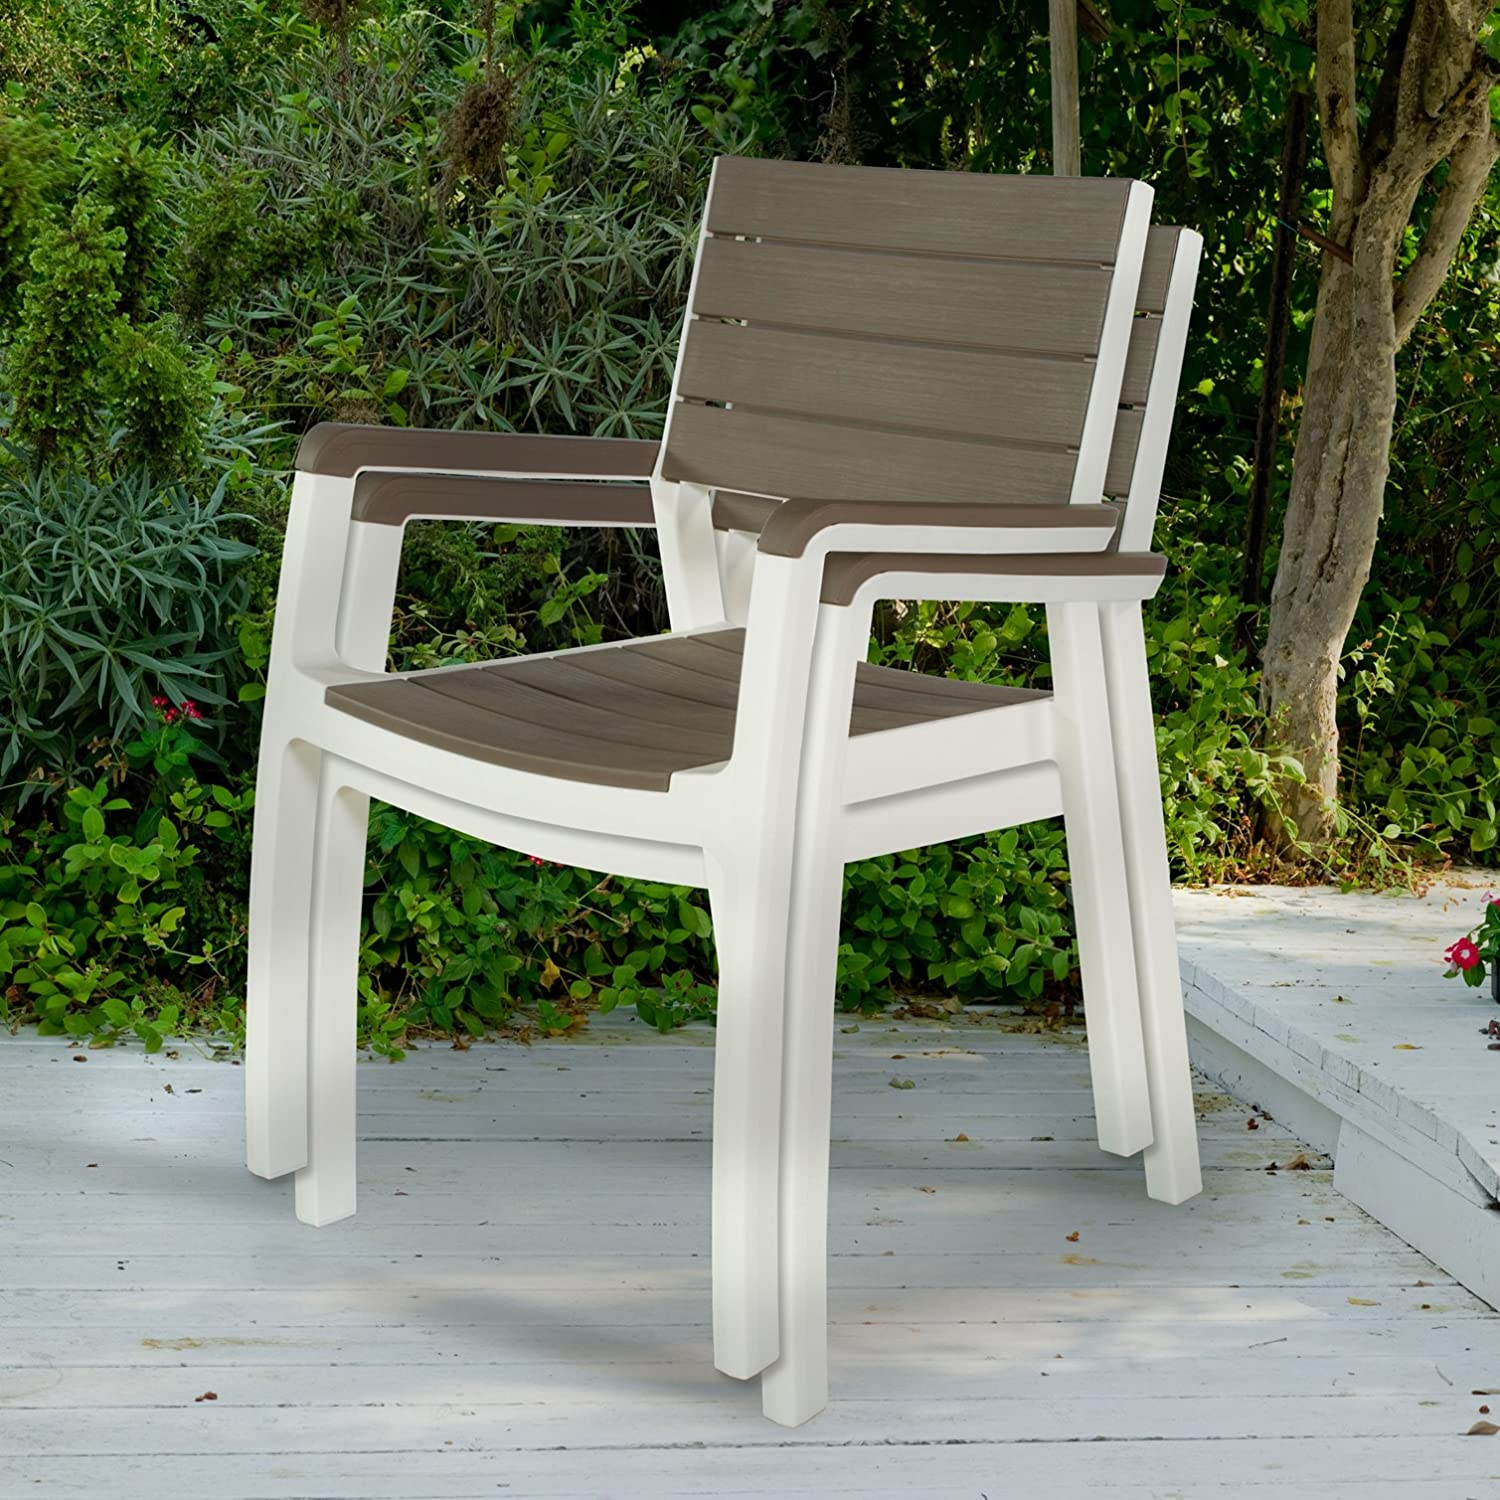 Amazon.com : Keter Harmony Indoor/Outdoor Stackable Patio Furniture ...